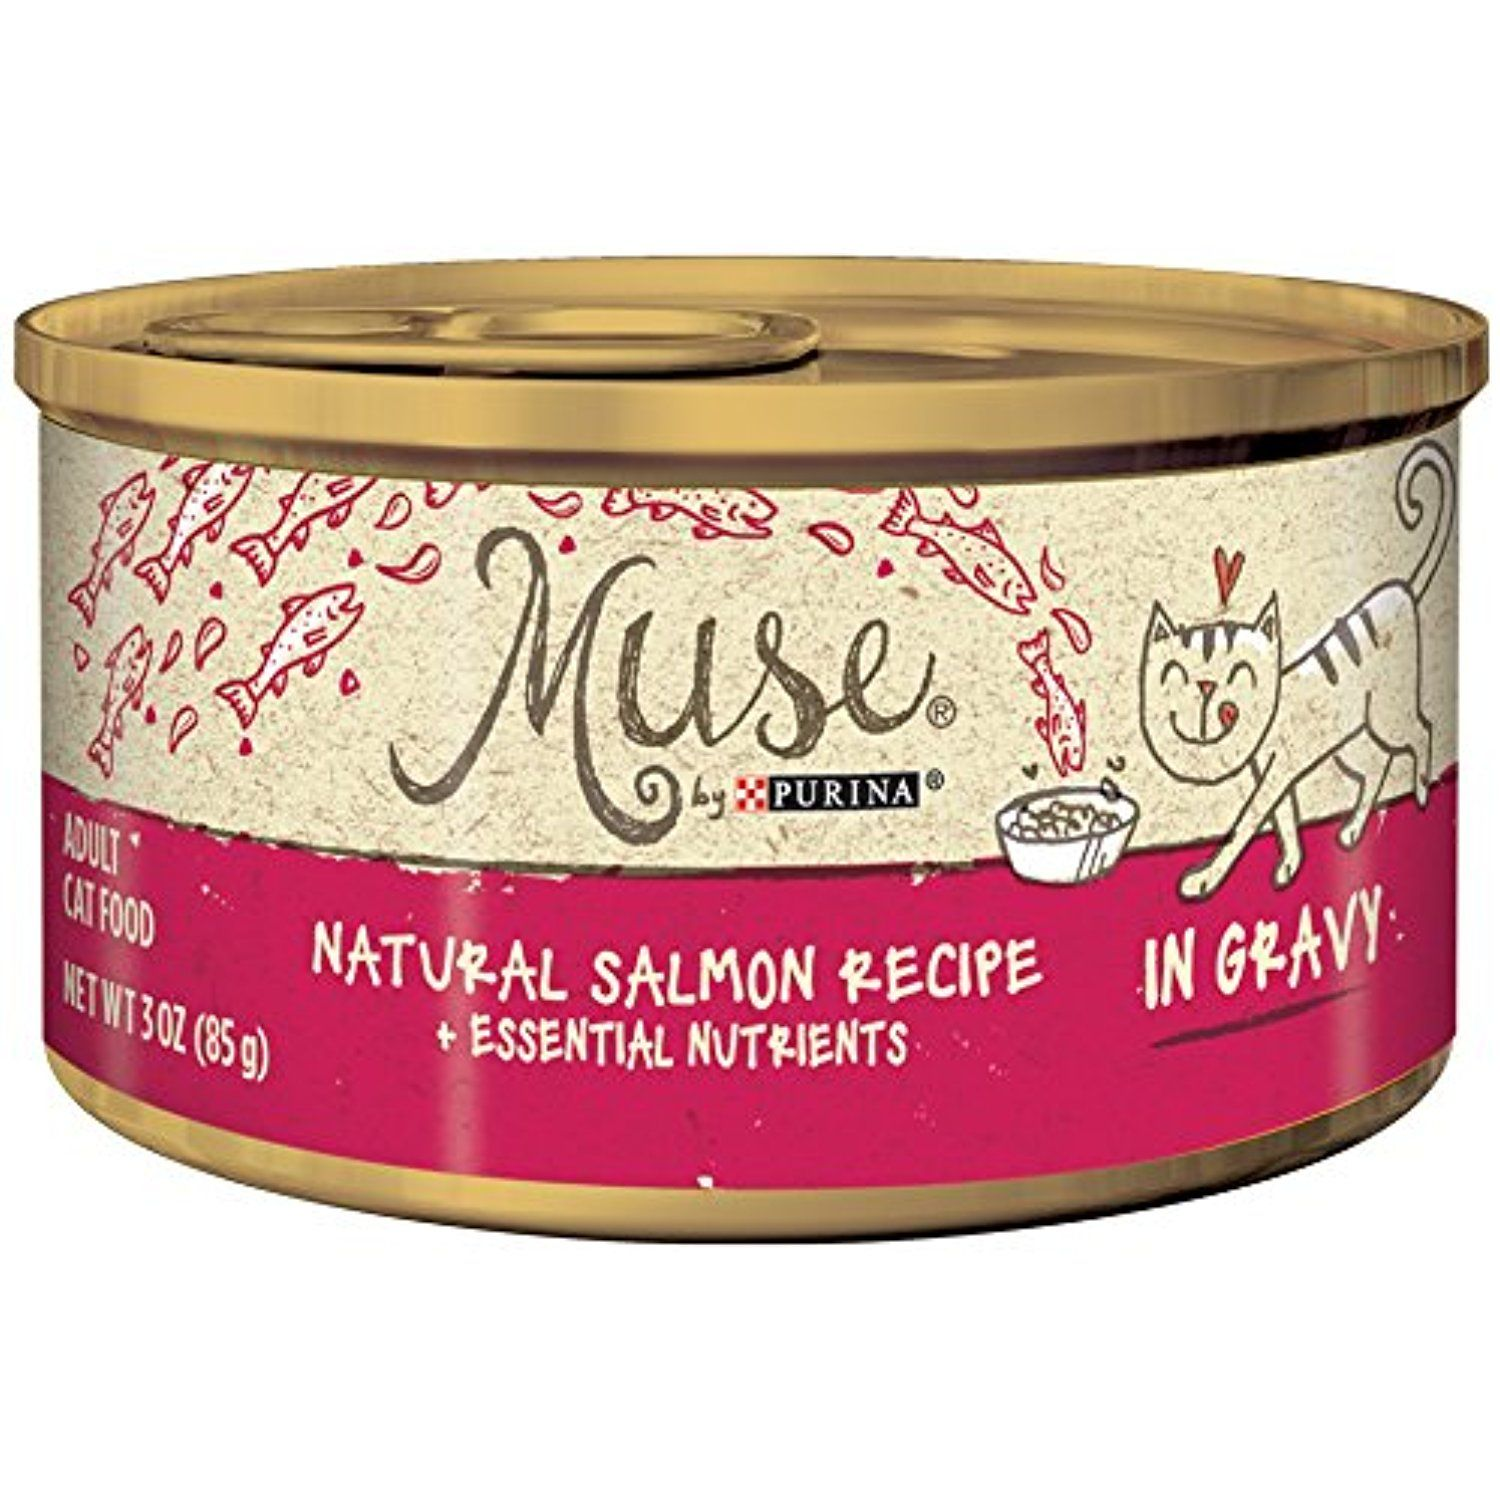 Muse by purina natural salmon recipe in gravy adult wet